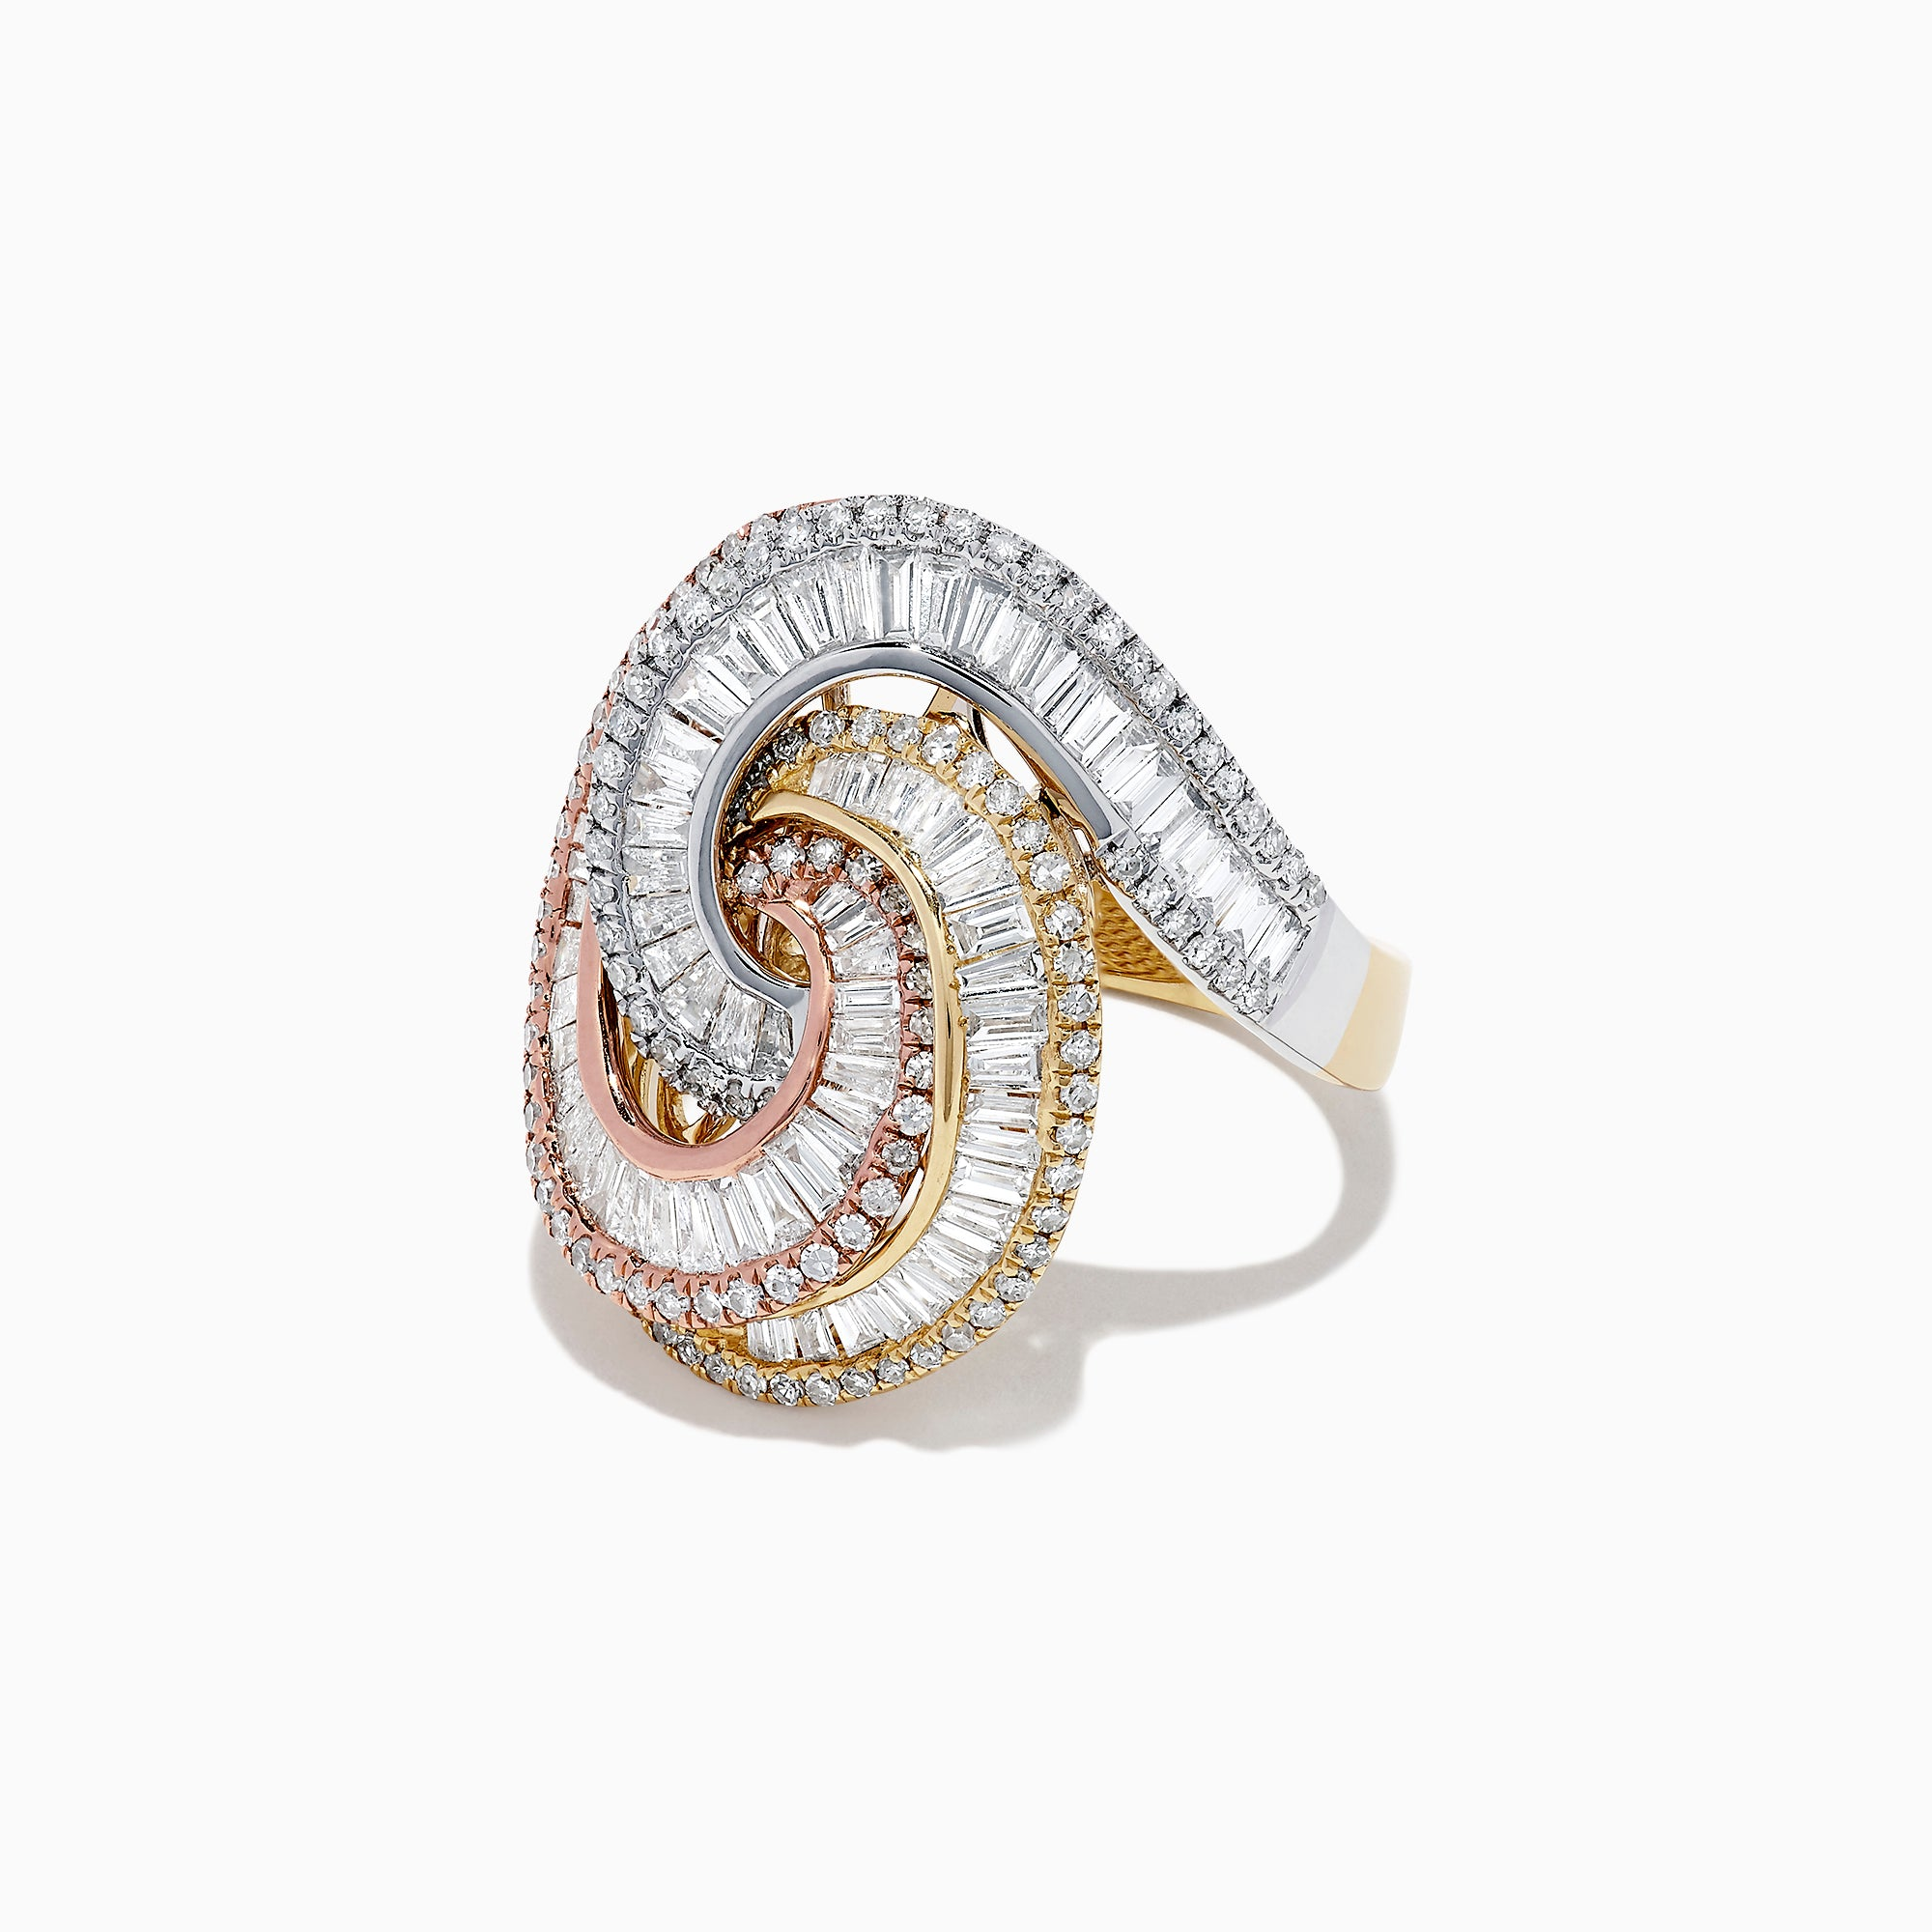 Effy Limited Edition 14K Tri Color Gold Diamond Swirl Ring, 1.66 TCW